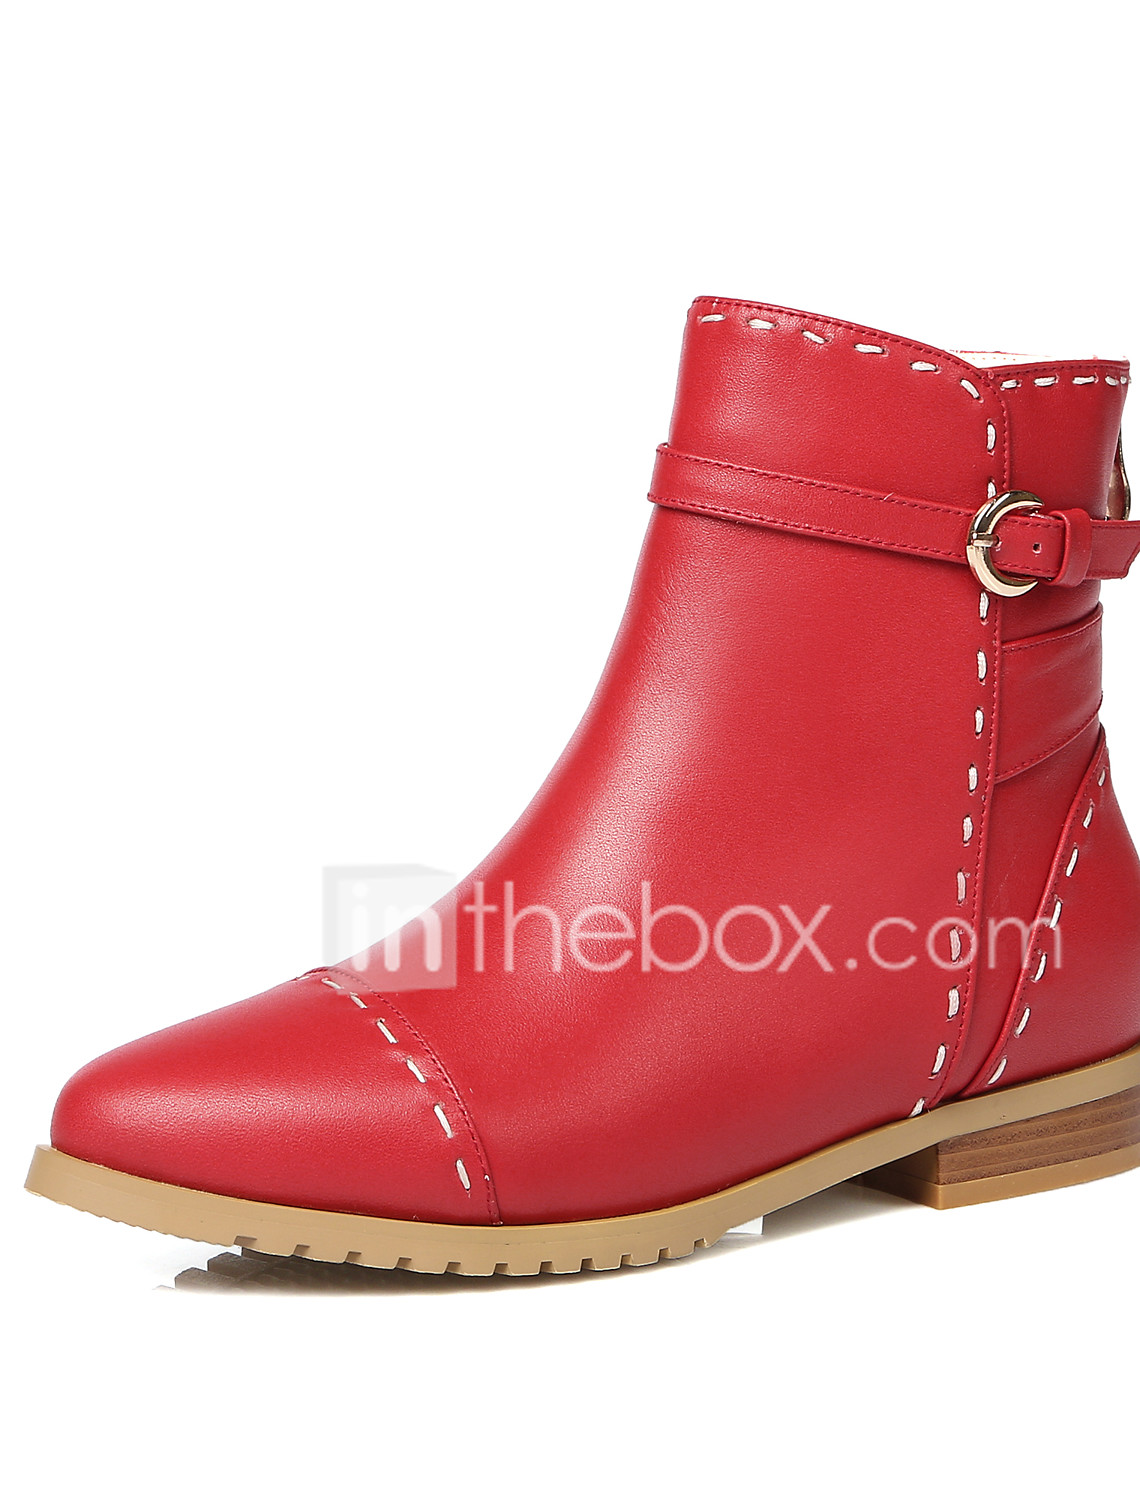 682b2773dcfc Women s Shoes Cowhide Fall Winter Boots Hiking Shoes Low Heel Pointed Toe  Booties Ankle Boots Buckle Zipper for Black Beige Red  05963935